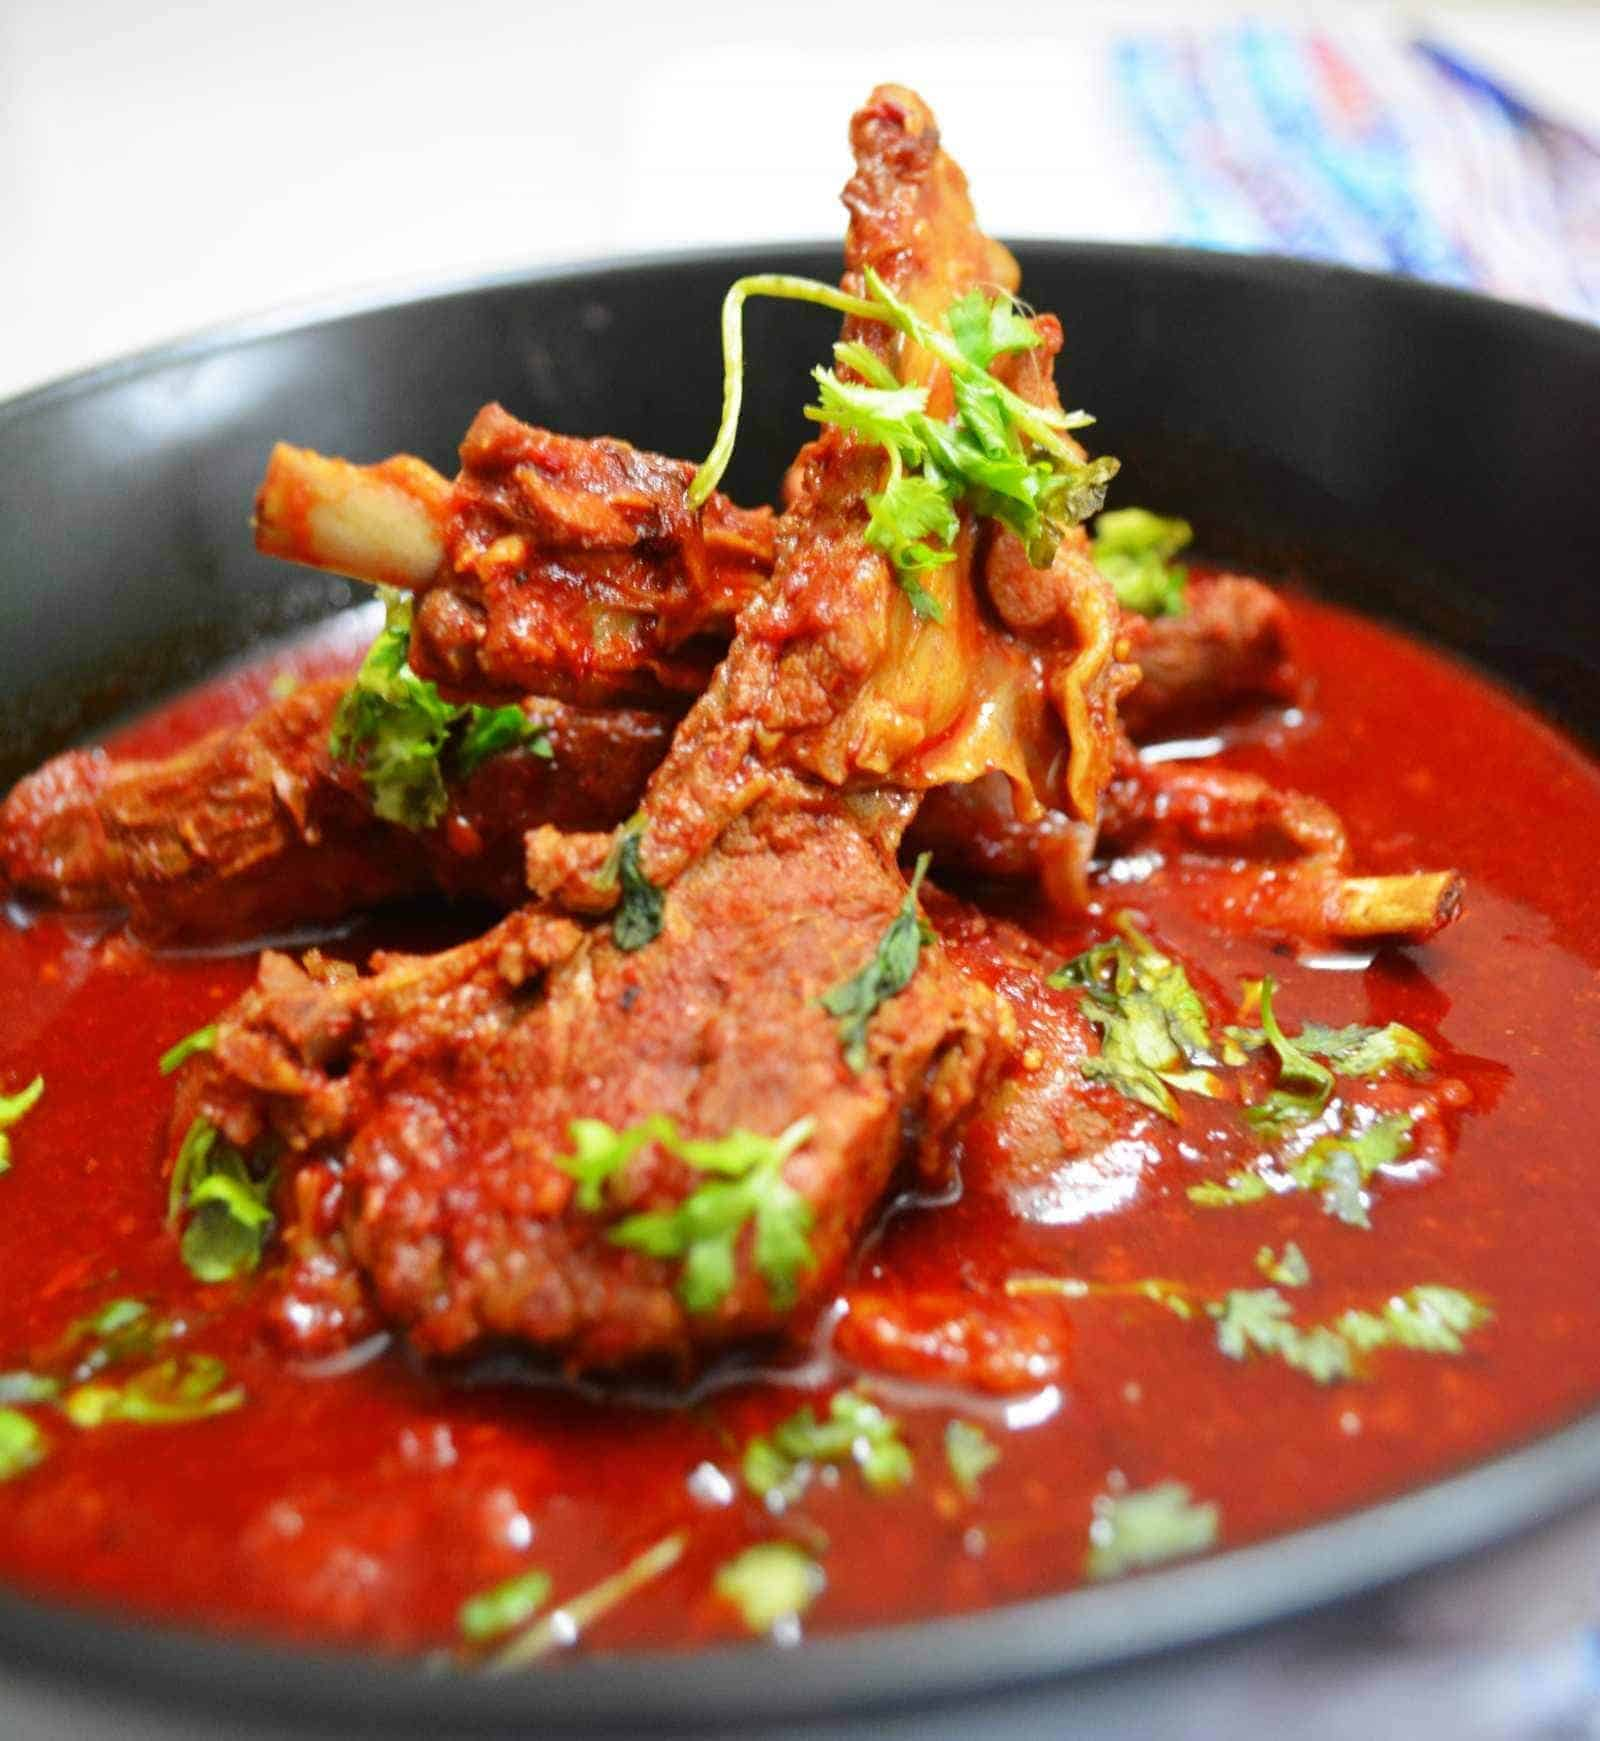 Laal Maas - cuisines of India